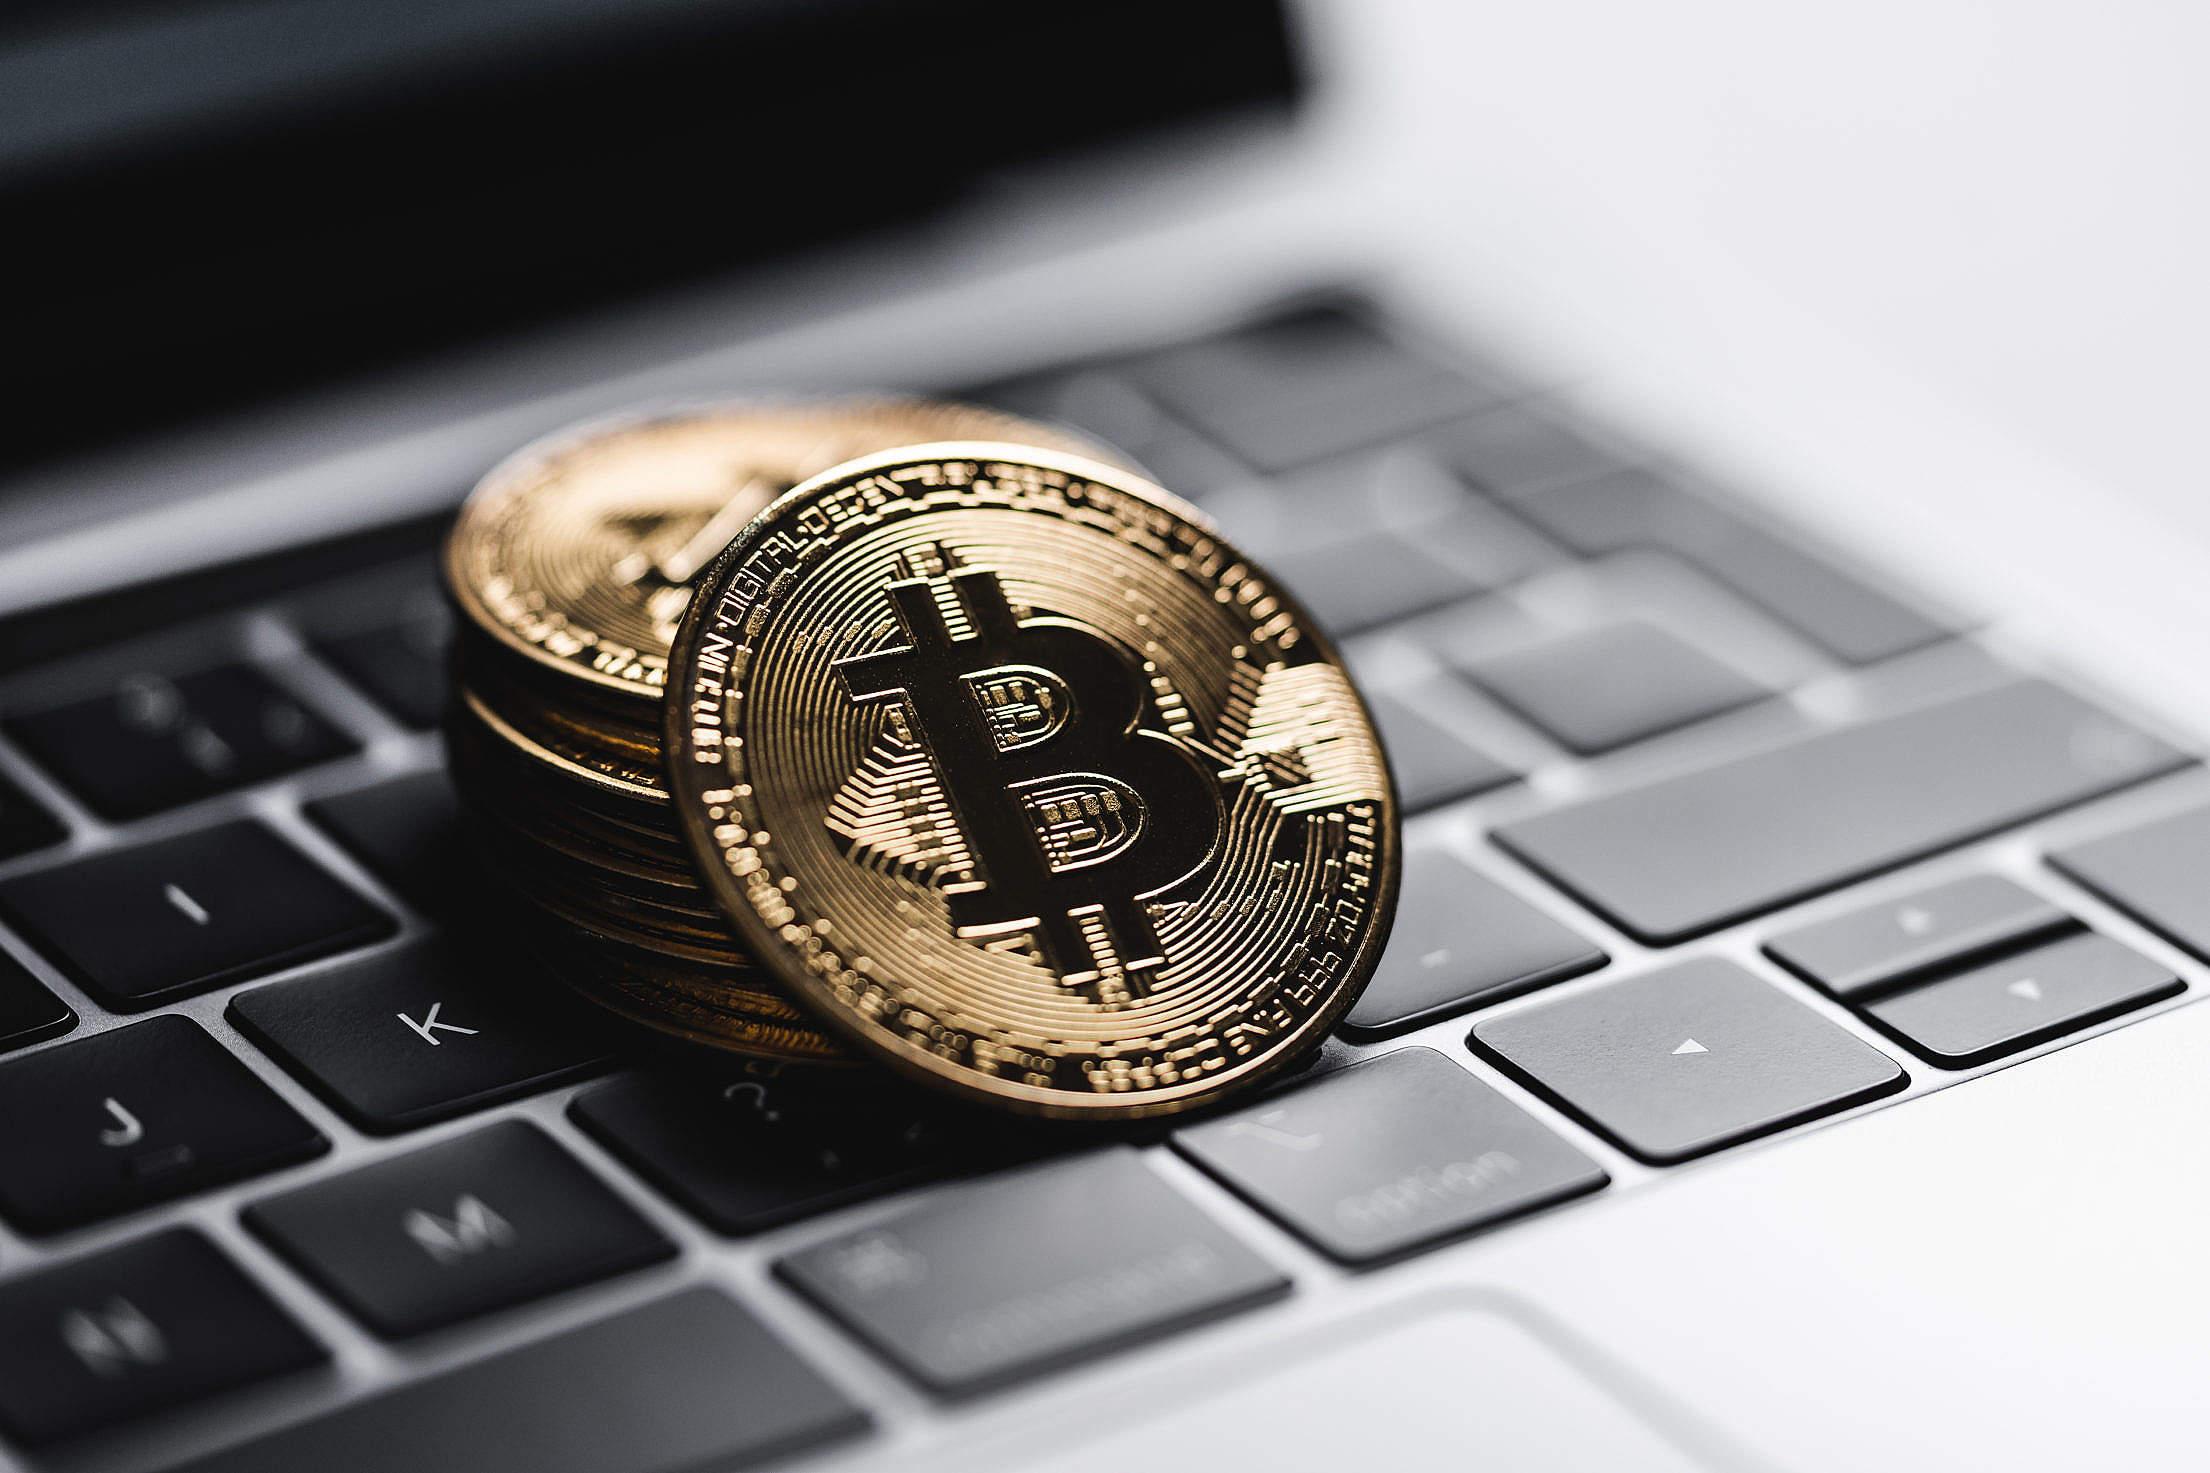 Gold Bitcoin Coins on Laptop Keyboard Free Stock Photo